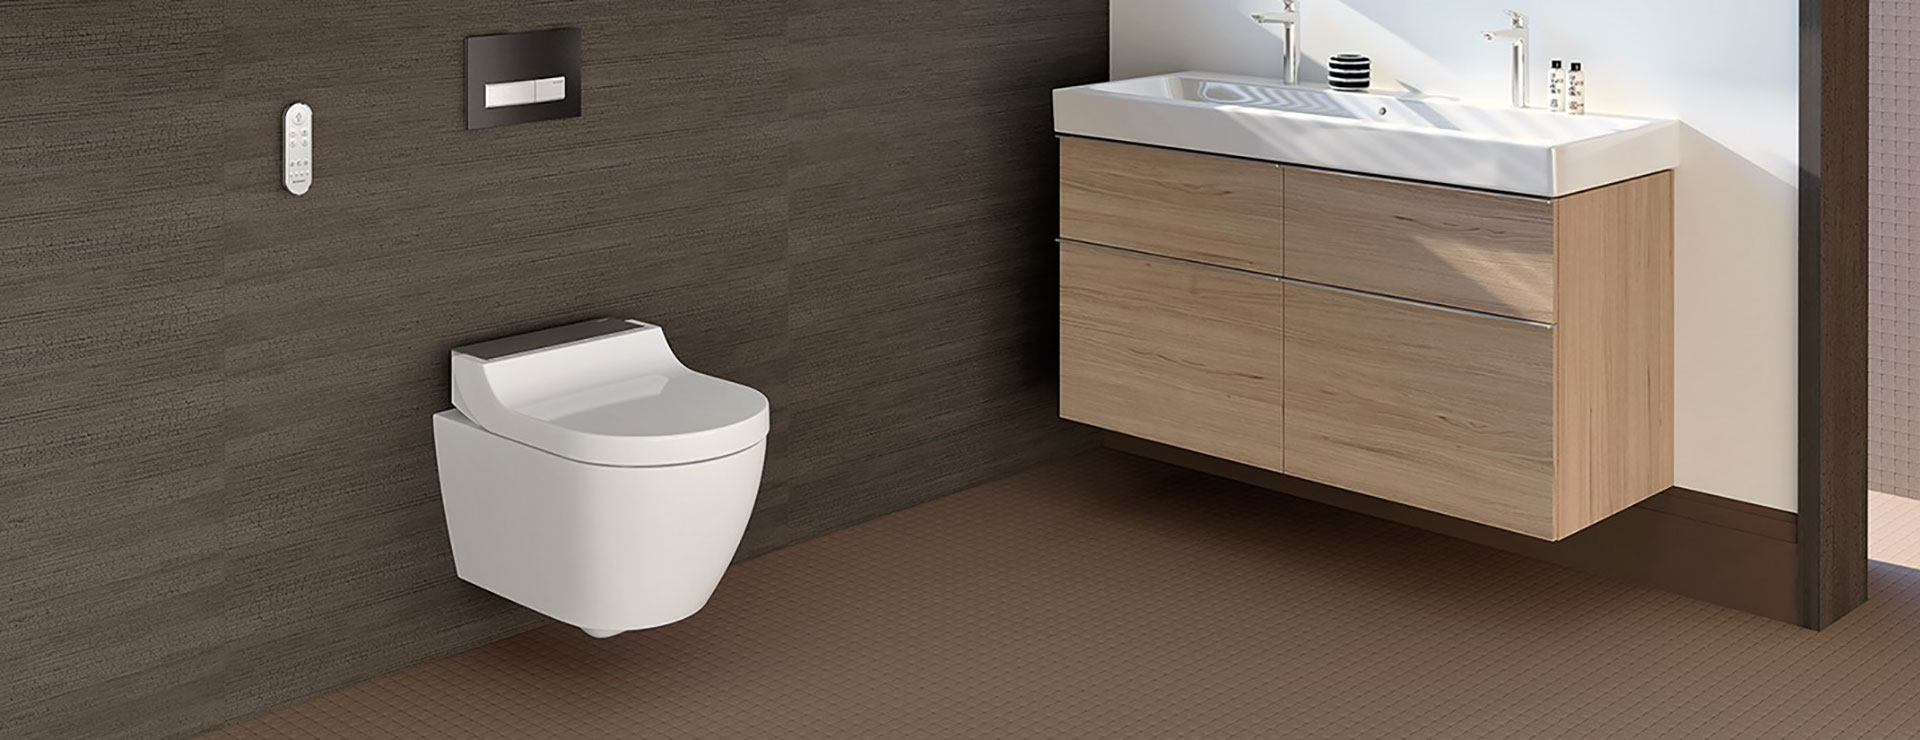 Toilets | Luxury Toilets | Simply Baths and Beds of Sherborne